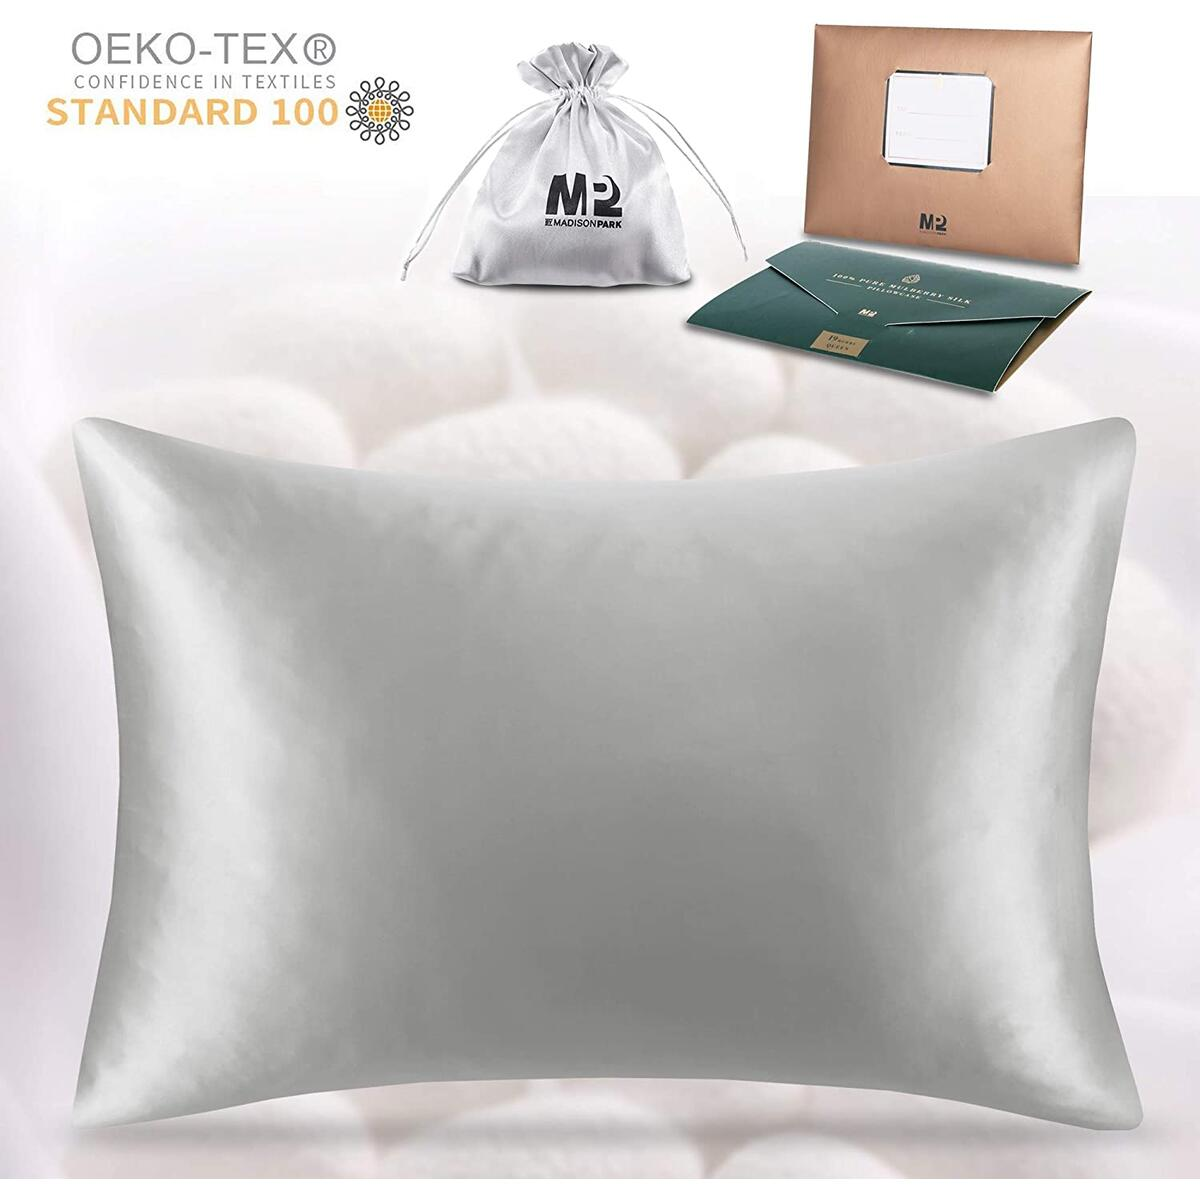 Pure Silk Pillowcase for Your Hair |  Both Sides 100% Mulberry Worm 19 Momme 600 Thread Count Pillow Cover w/ Hidden Zipper - 1 Pack, Queen Size, Grey